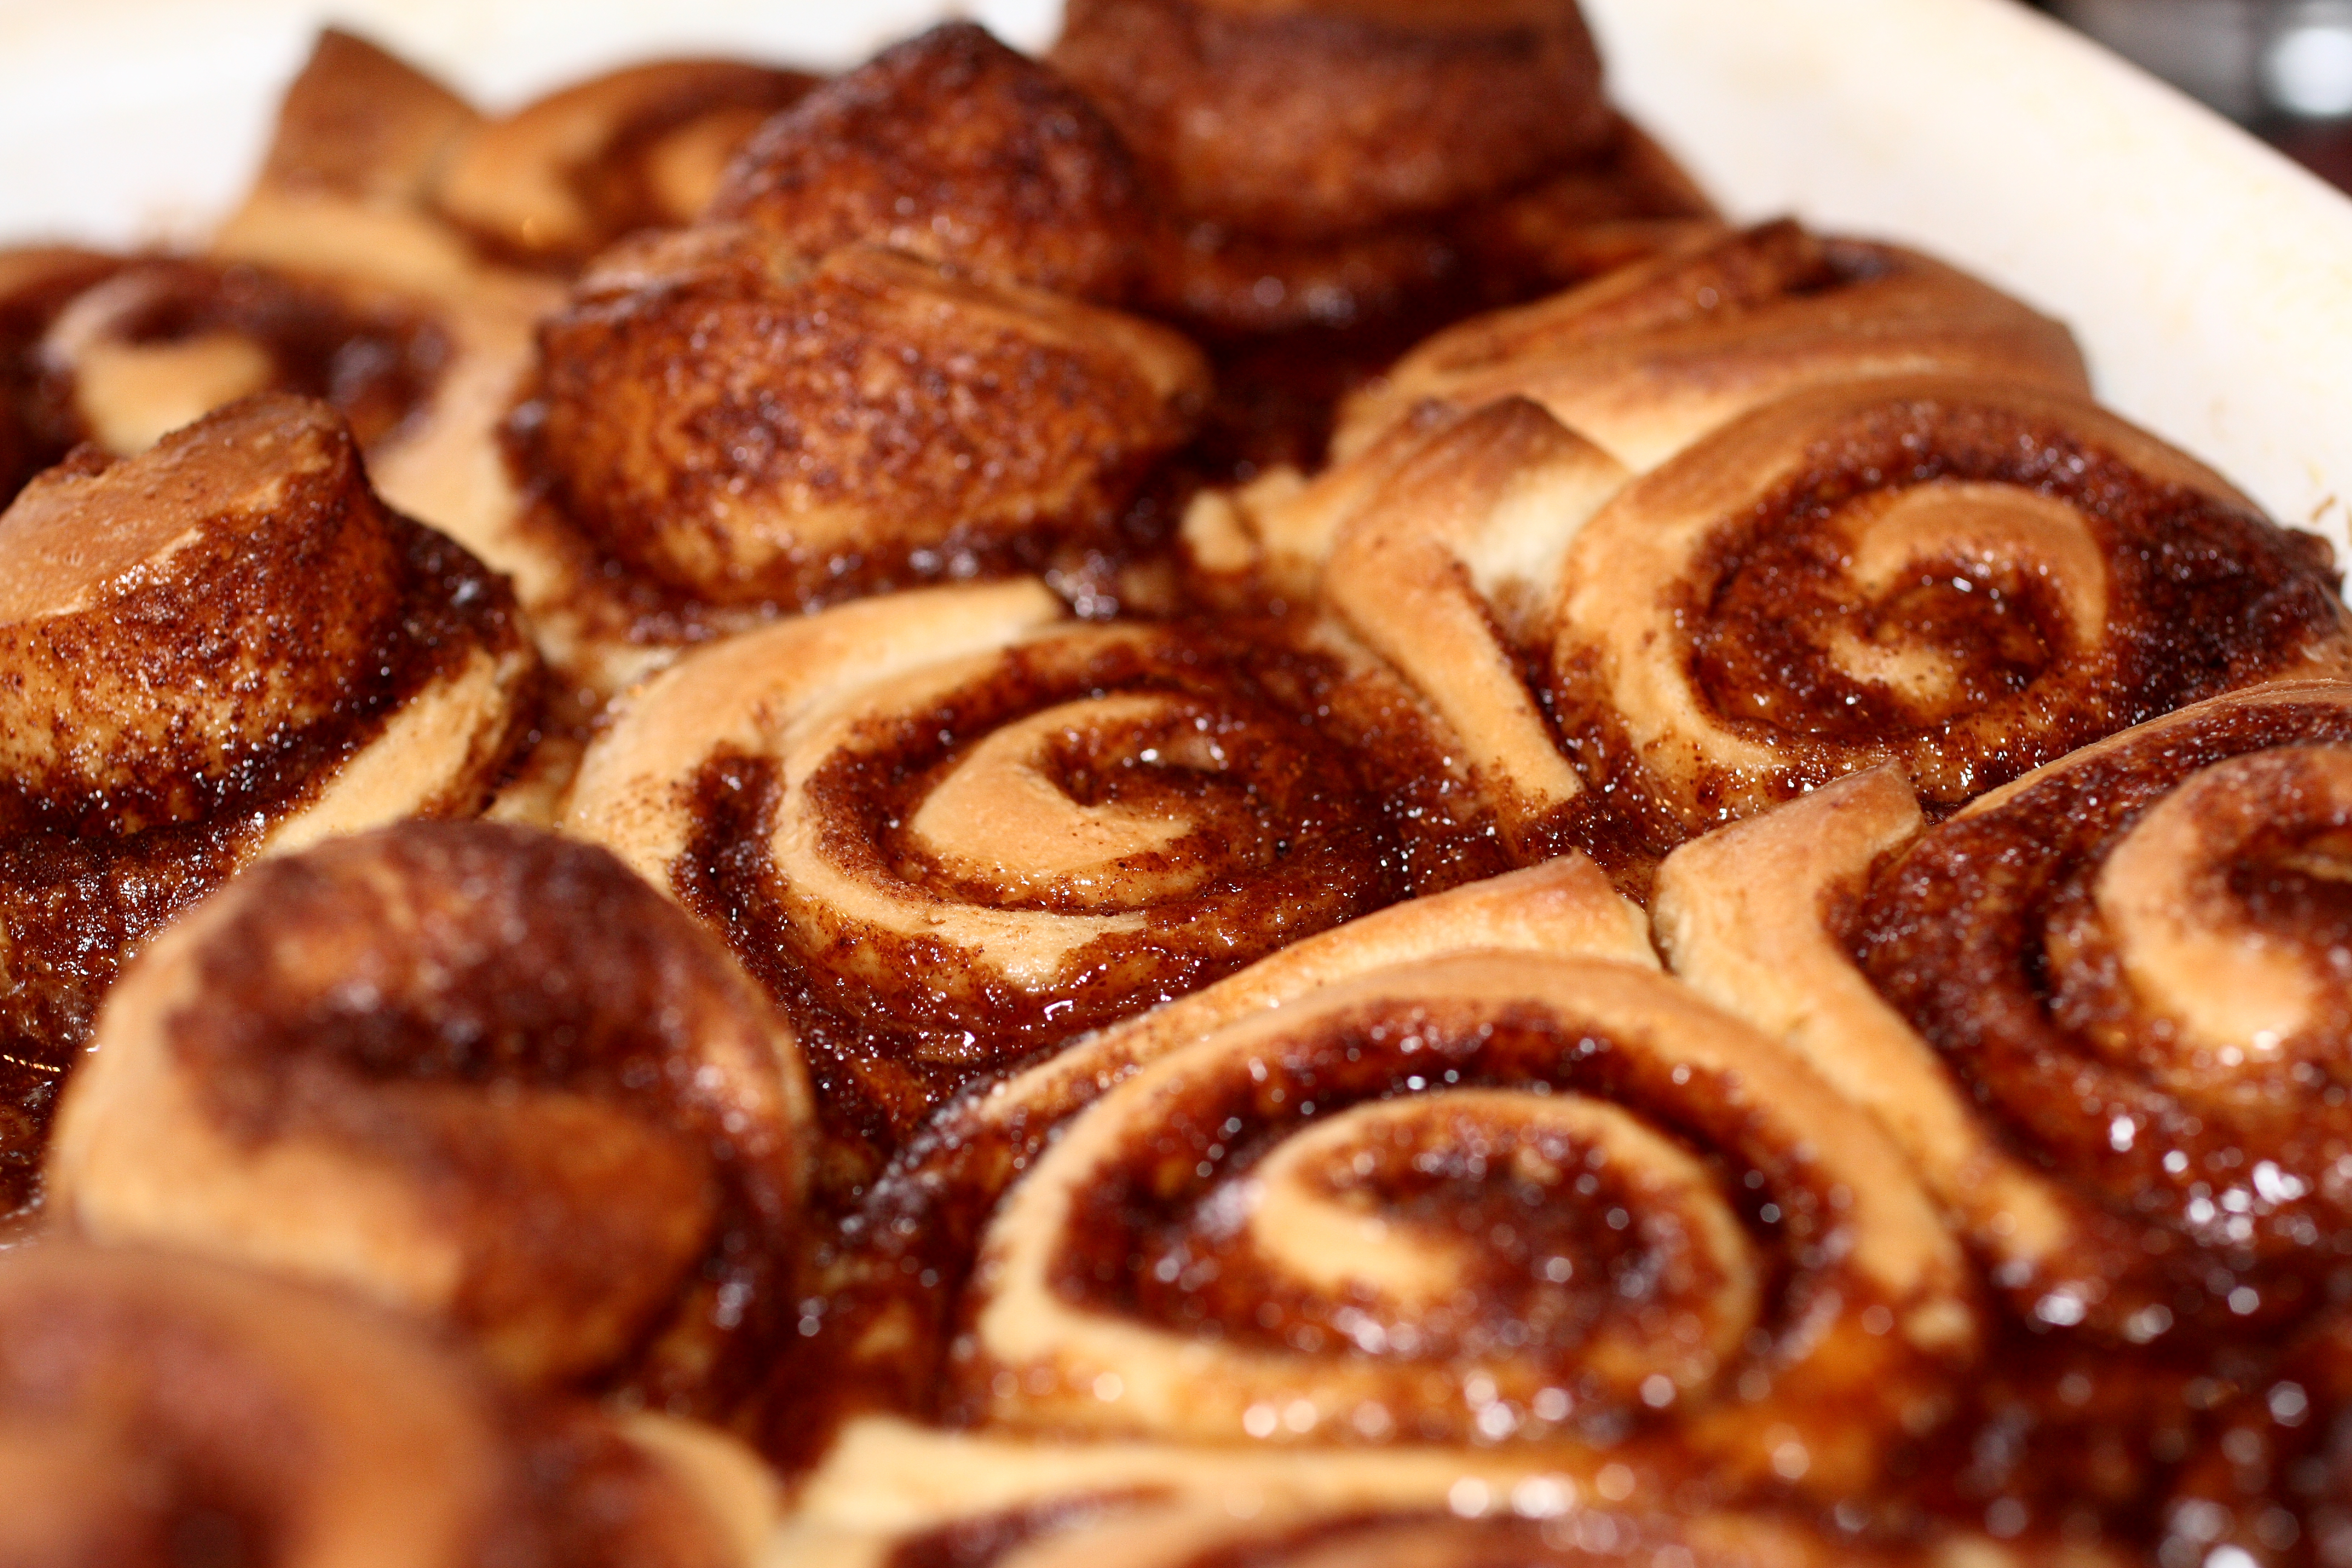 Description Cinnamon roll buns fresh from the oven, March 2010.jpg